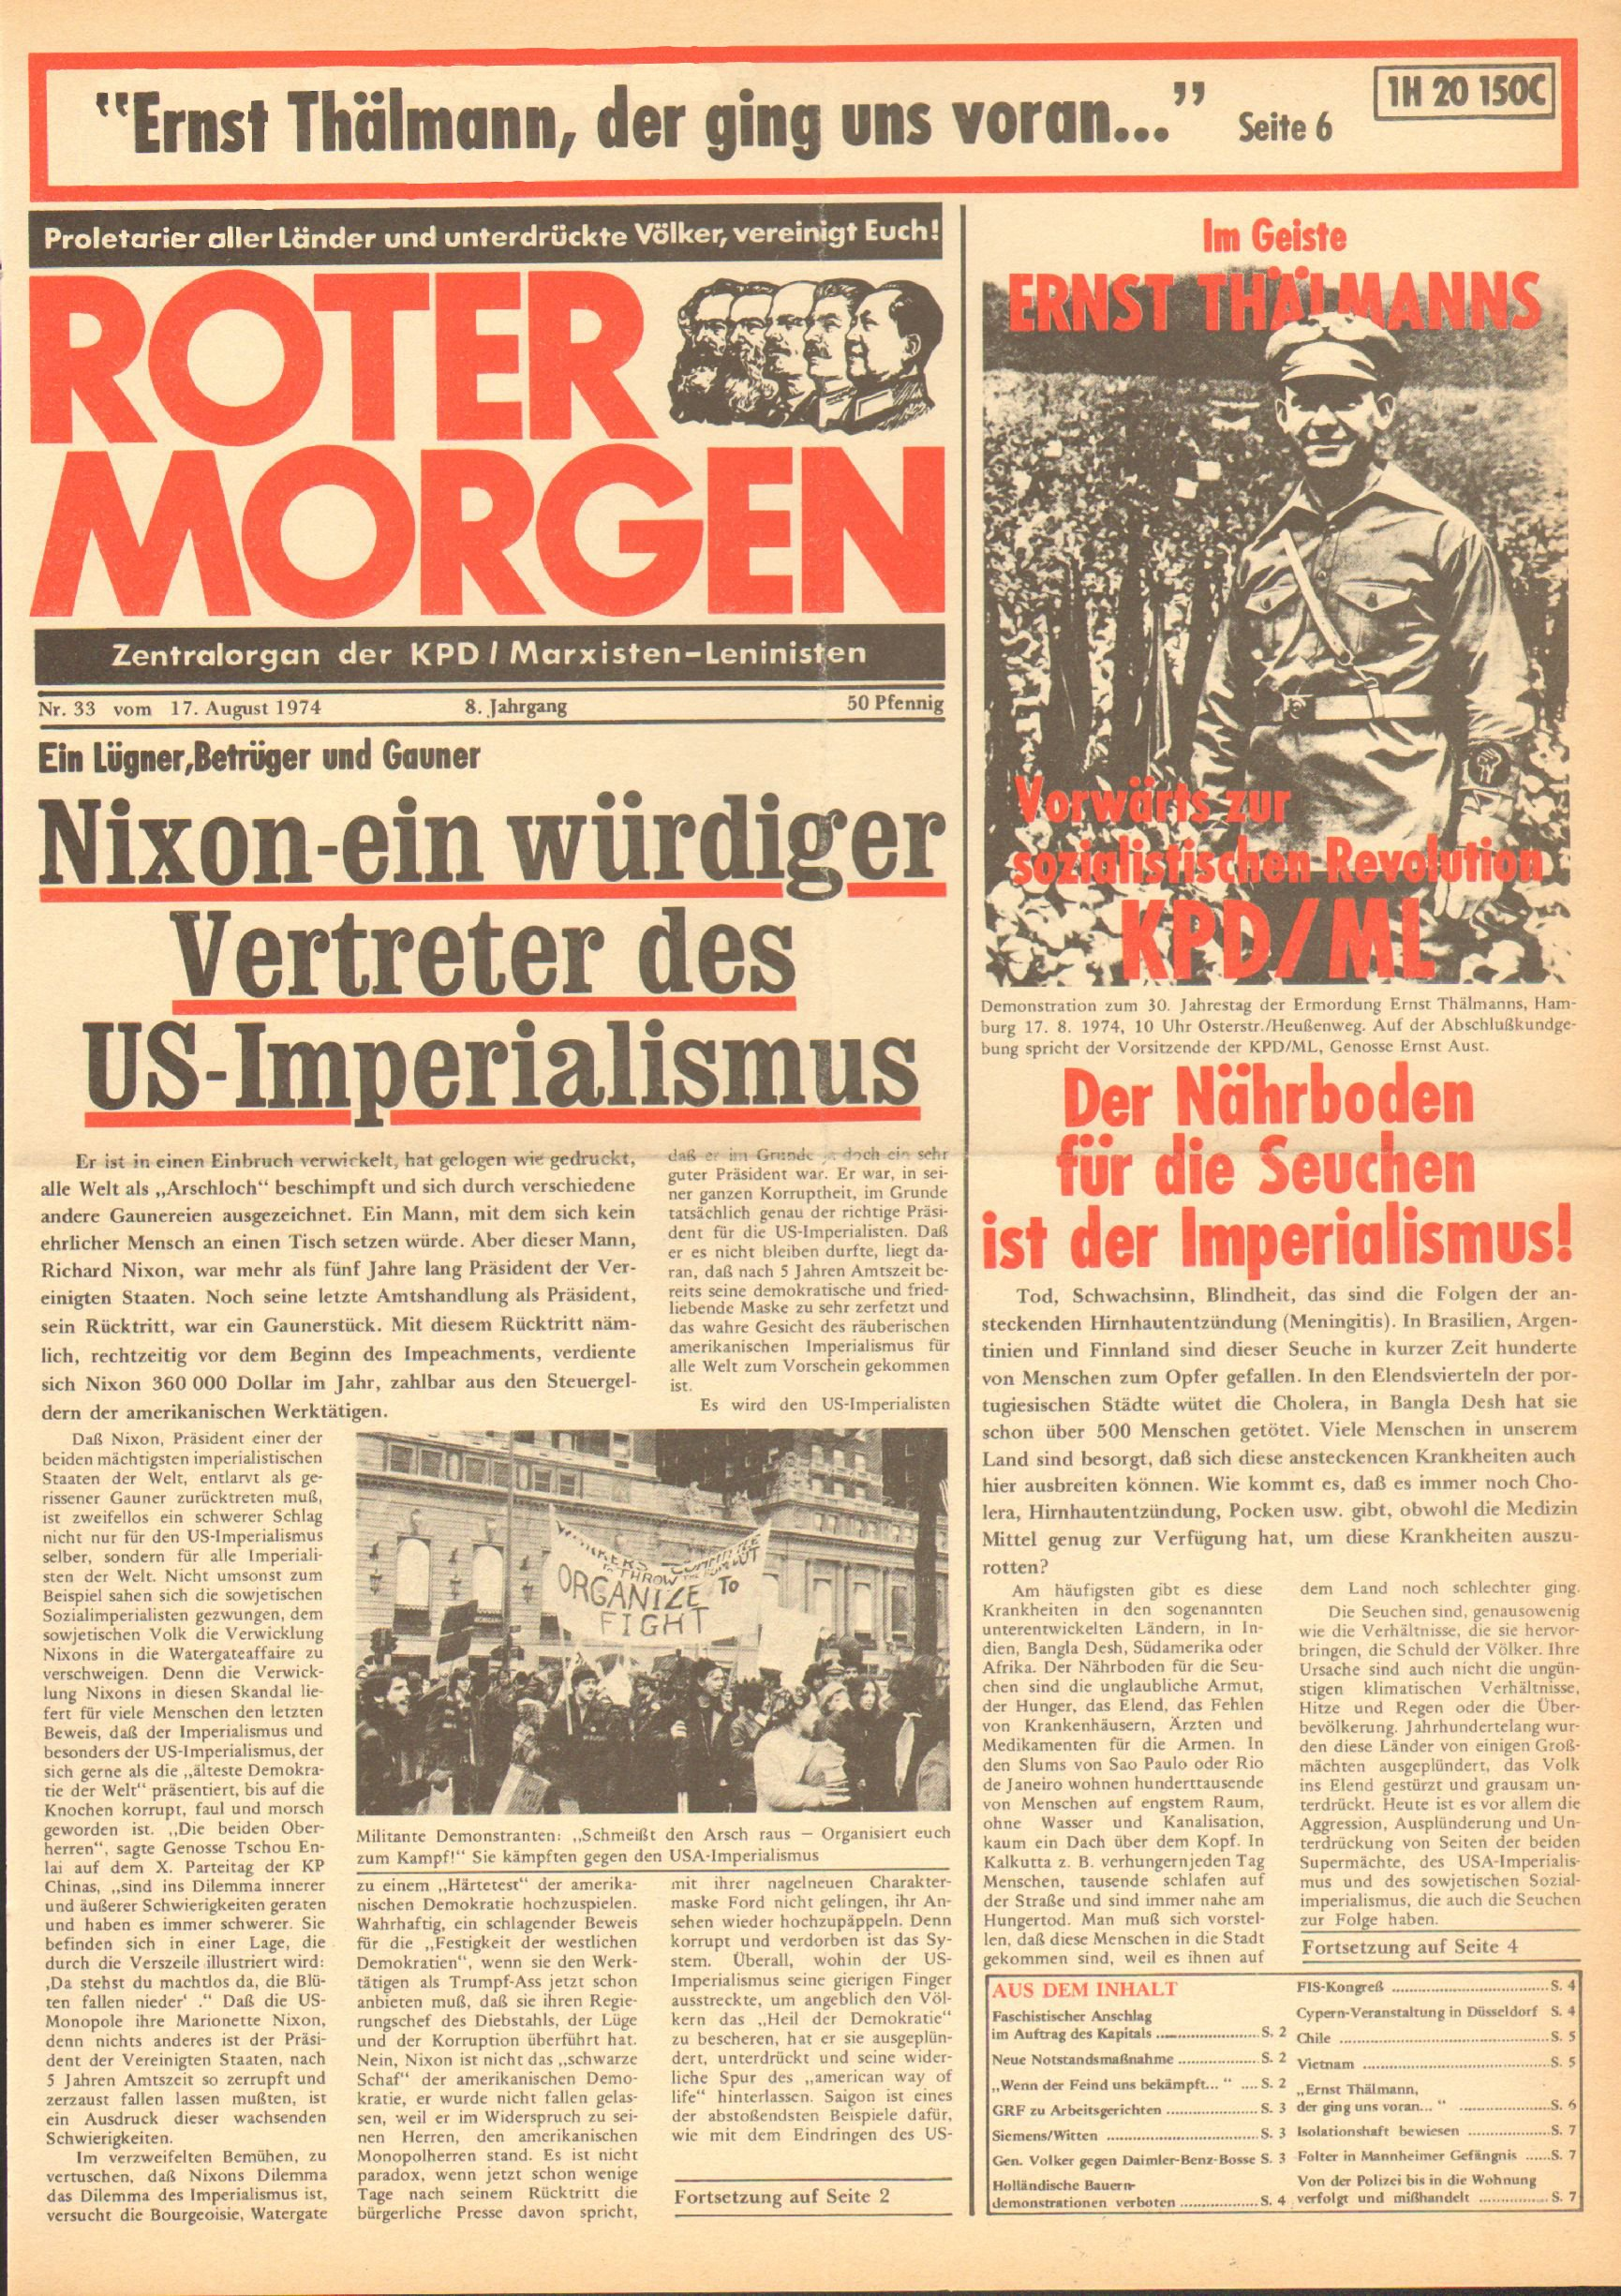 Roter Morgen, 8. Jg., 17. August 1974, Nr. 33, Seite 1